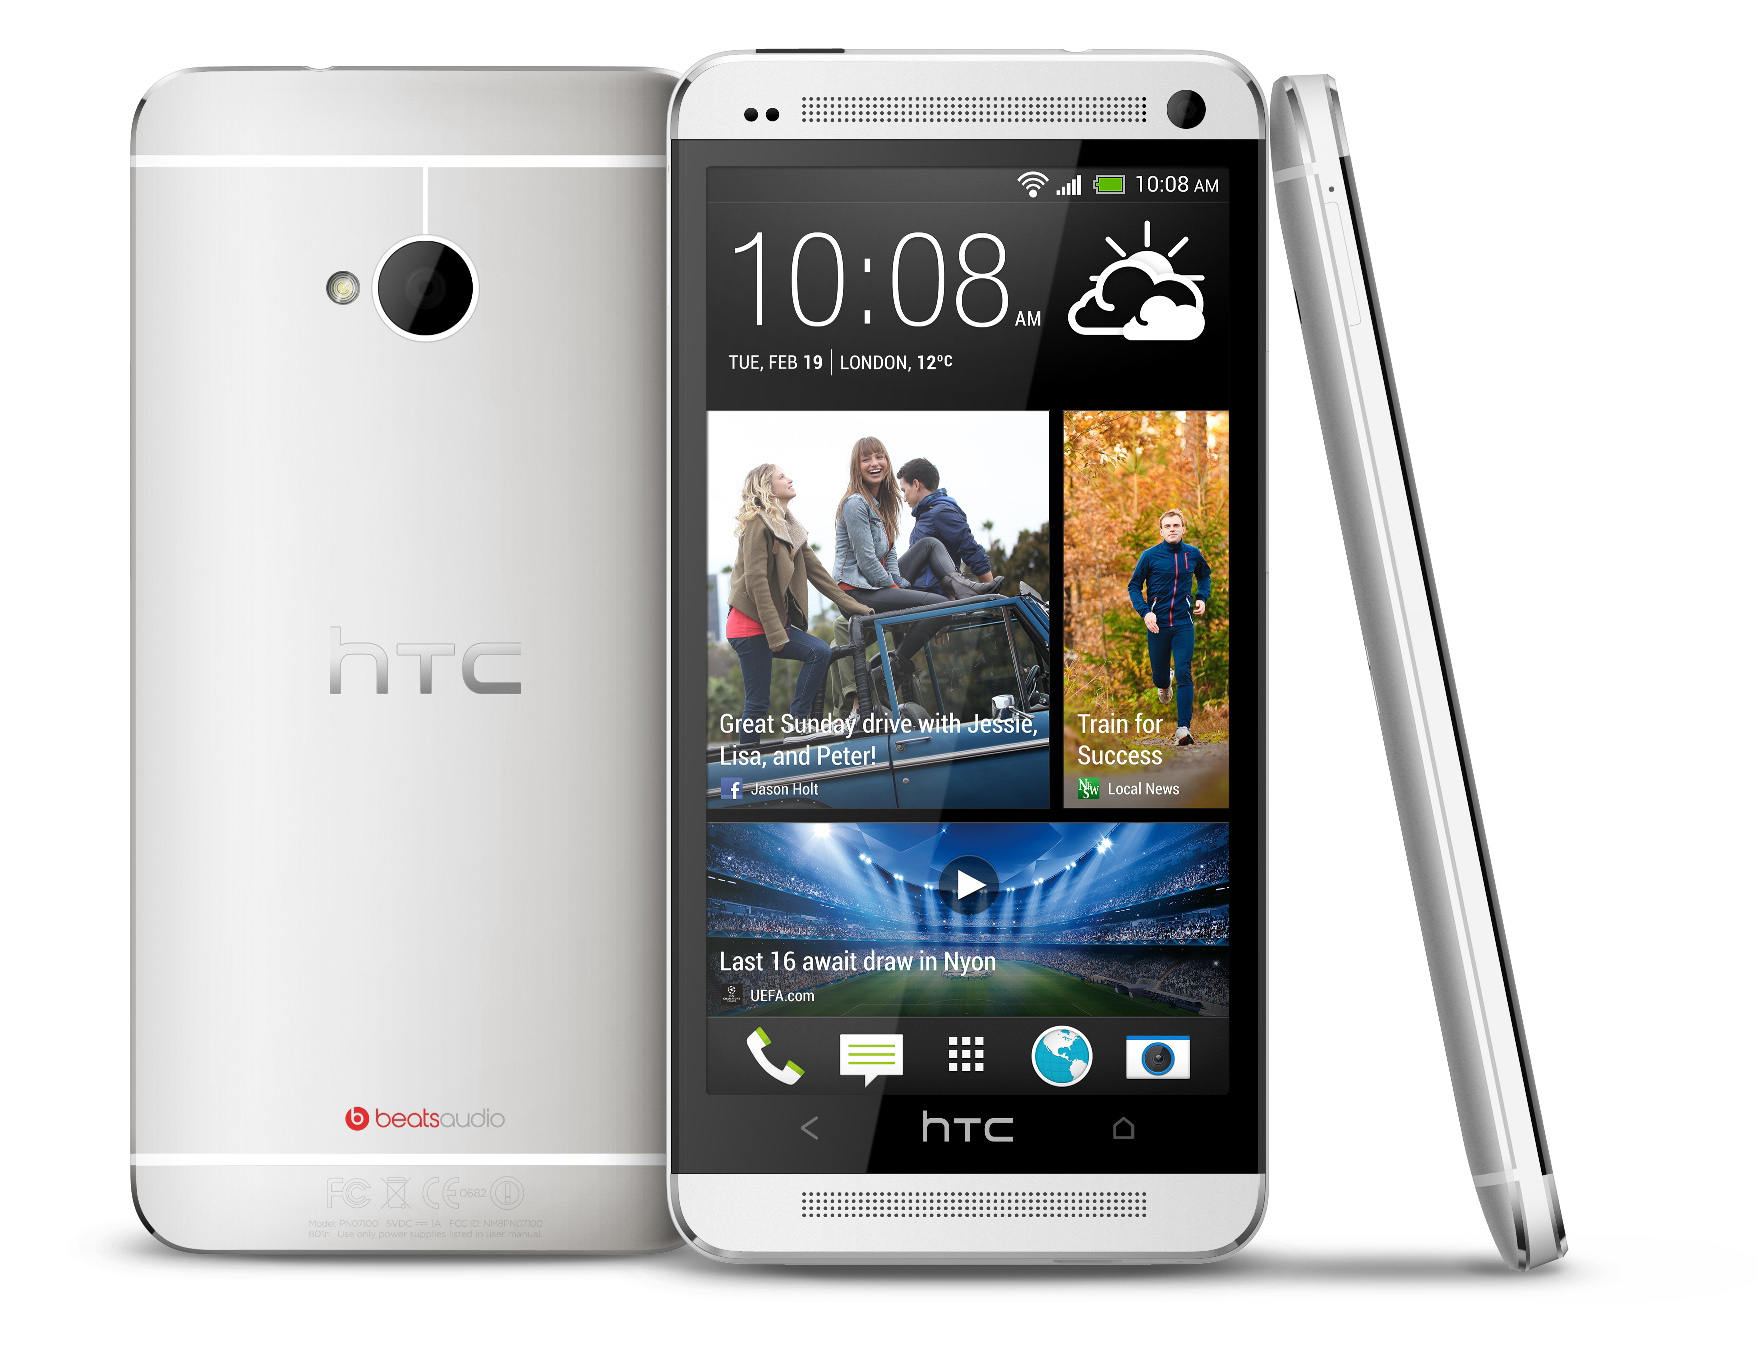 The Best Features Found on the New HTC One Smartphone